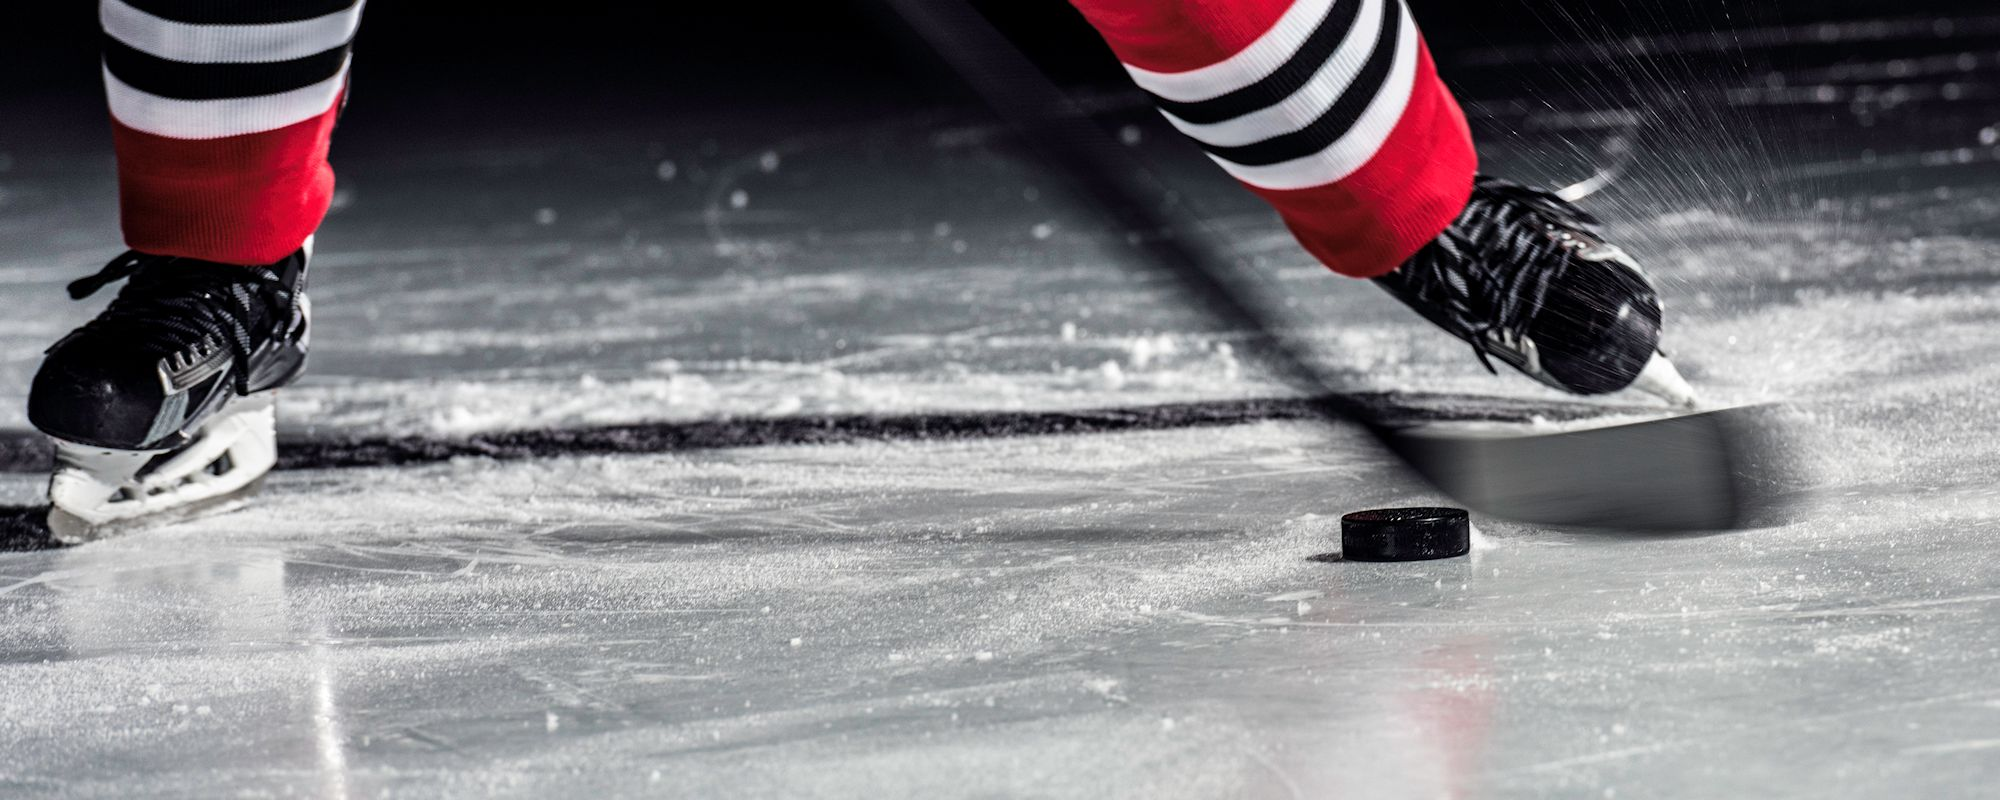 Hockey player skates with stick and puck on ice